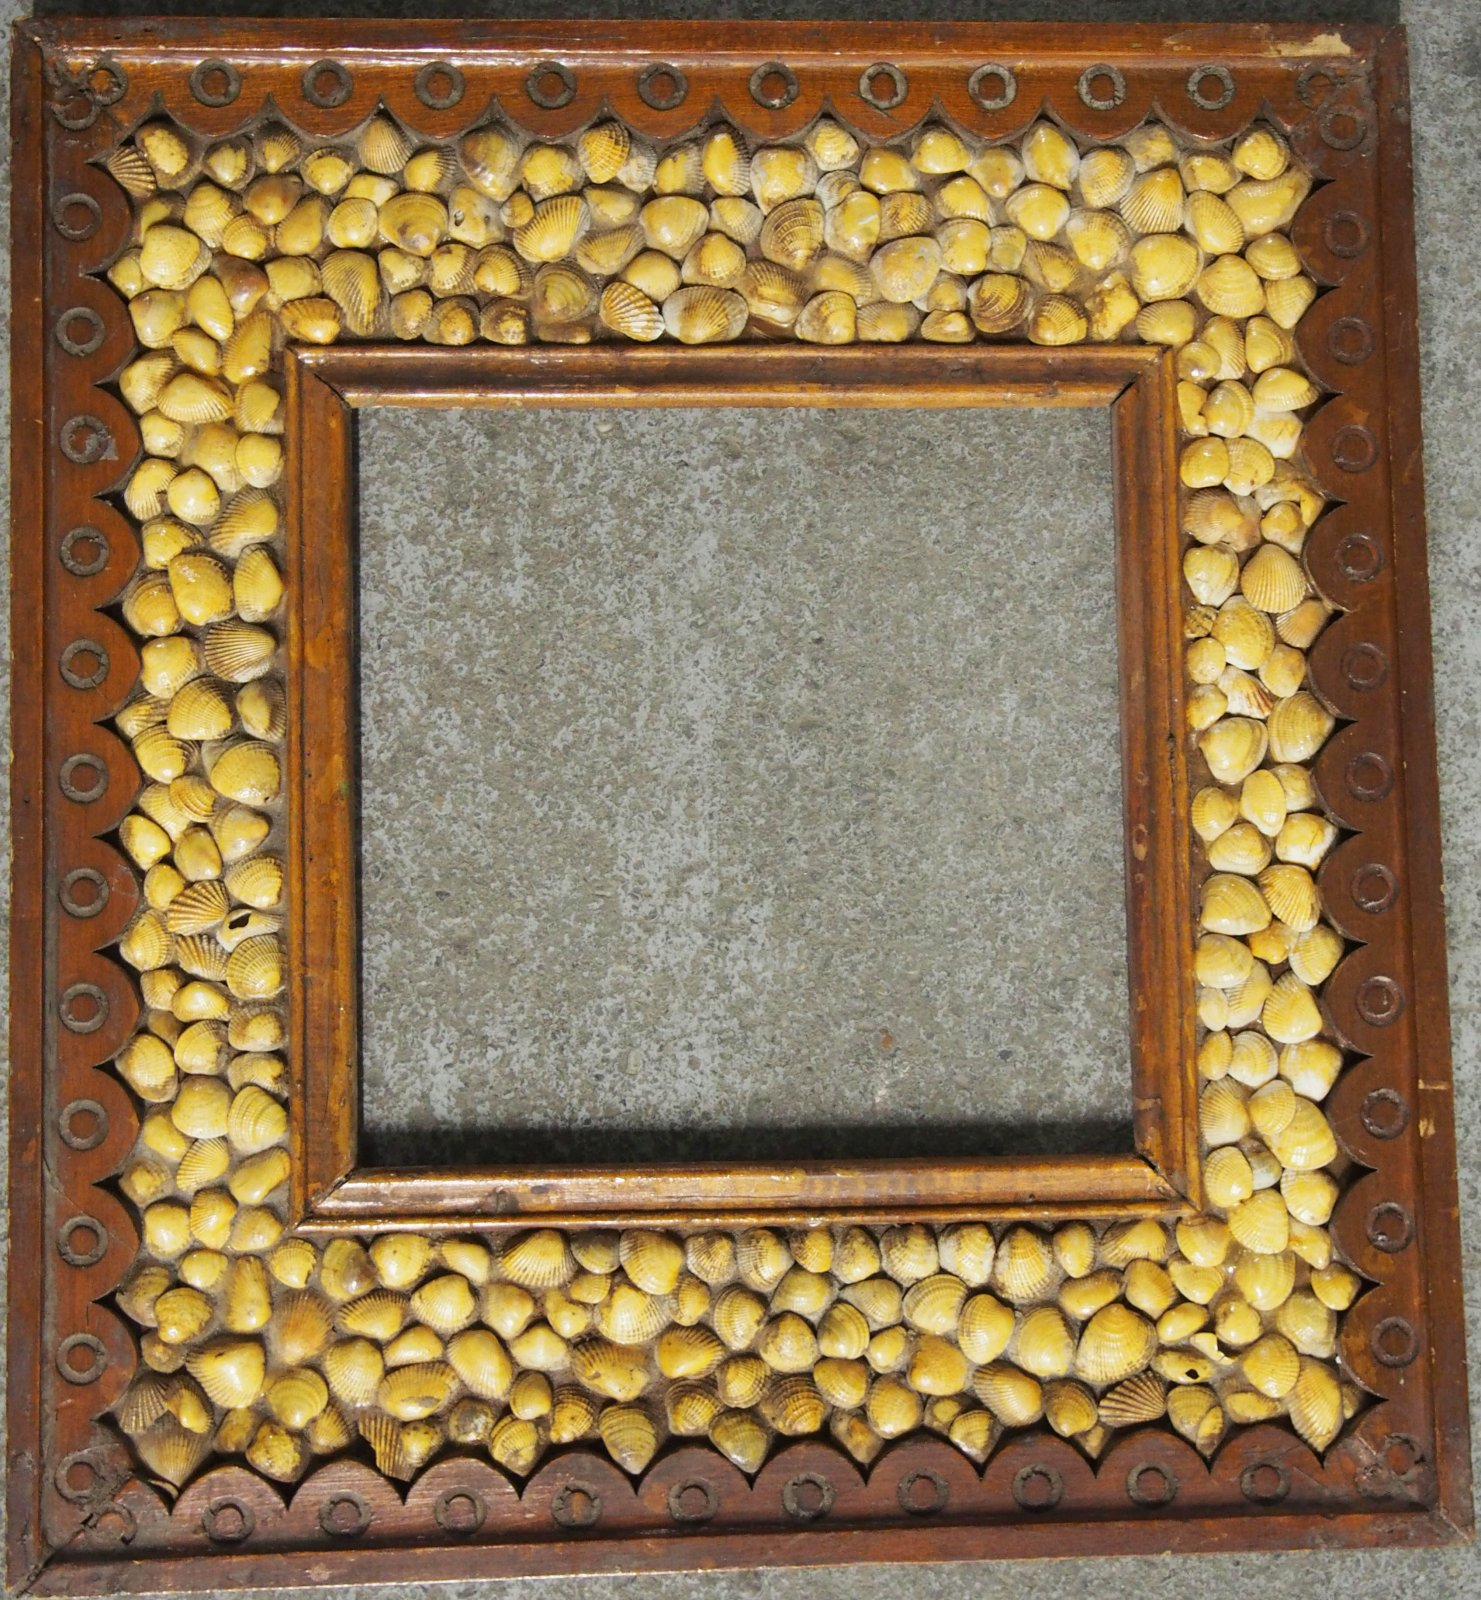 PEBBLES TRAMP ART FRAME